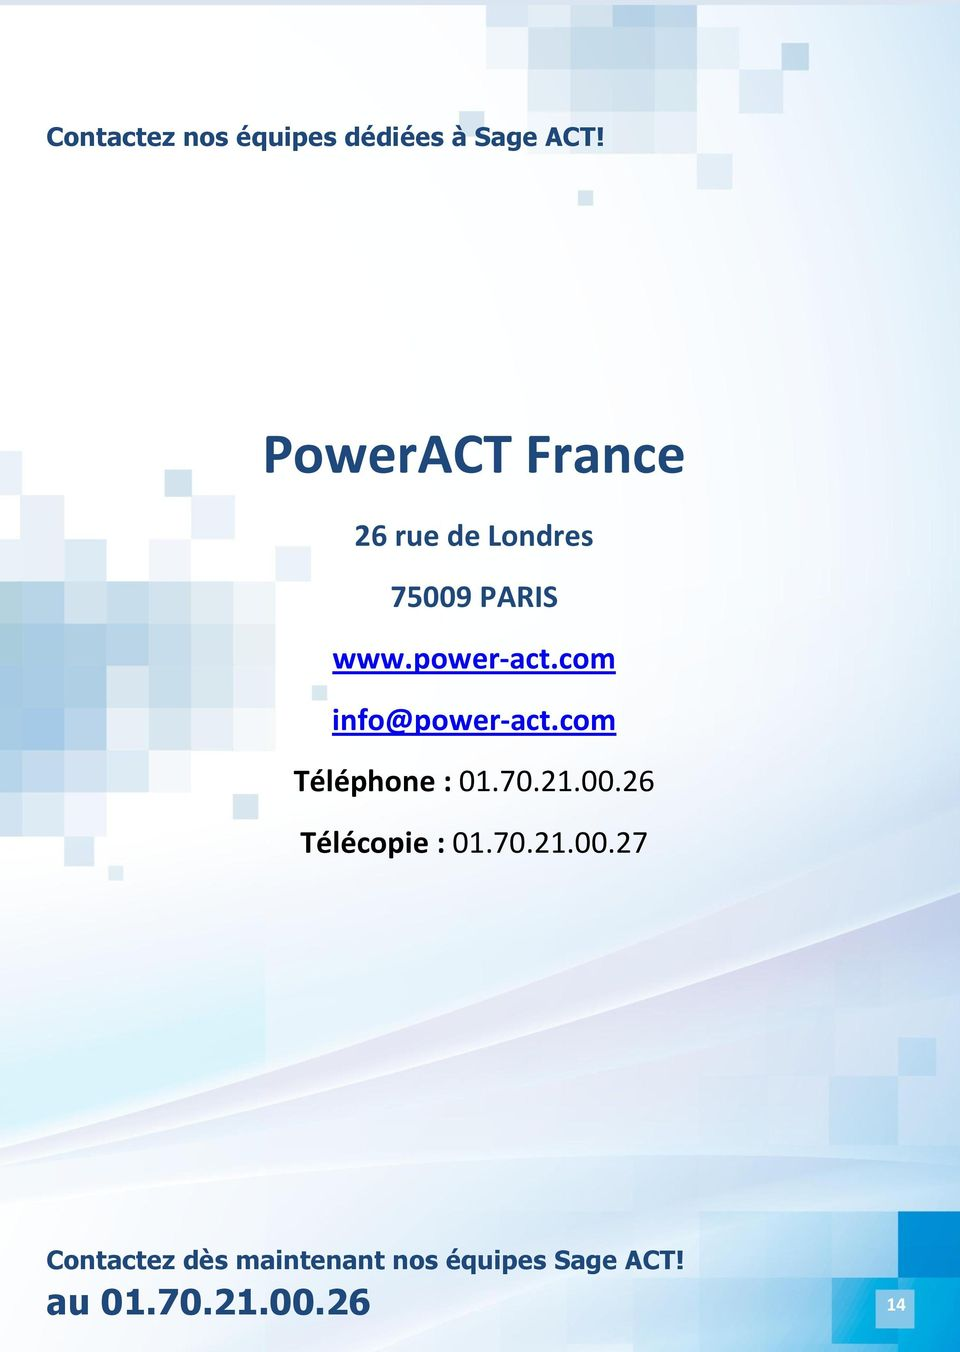 power-act.com info@power-act.com Téléphone : 01.